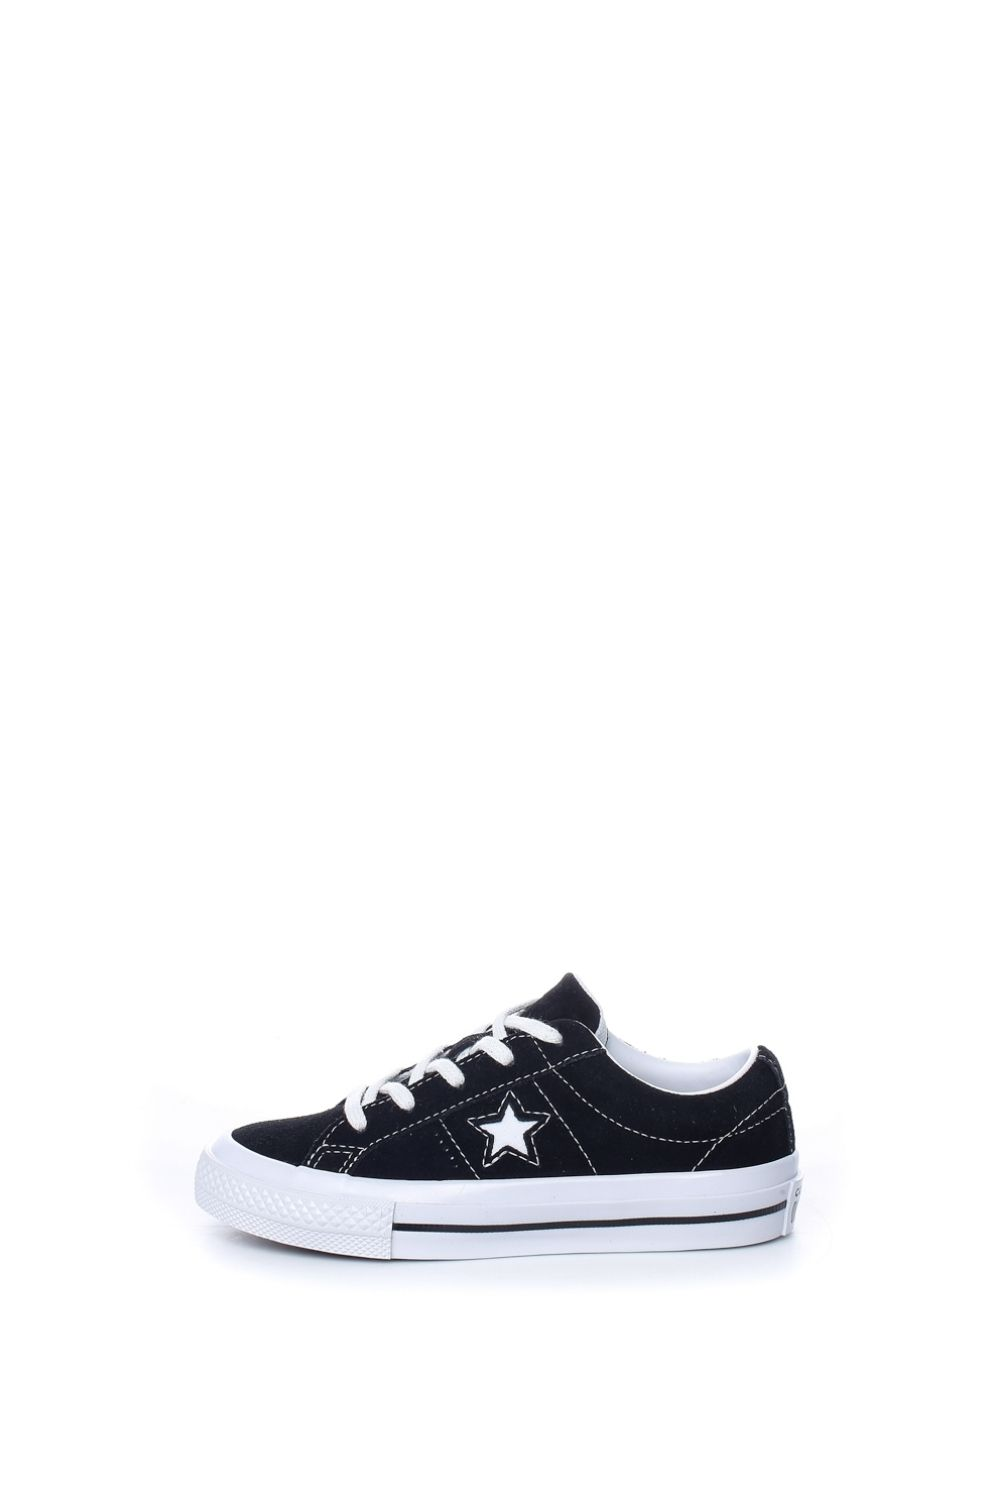 CONVERSE – Παιδικά sneakers CONVERSE ONE STAR μαύρα